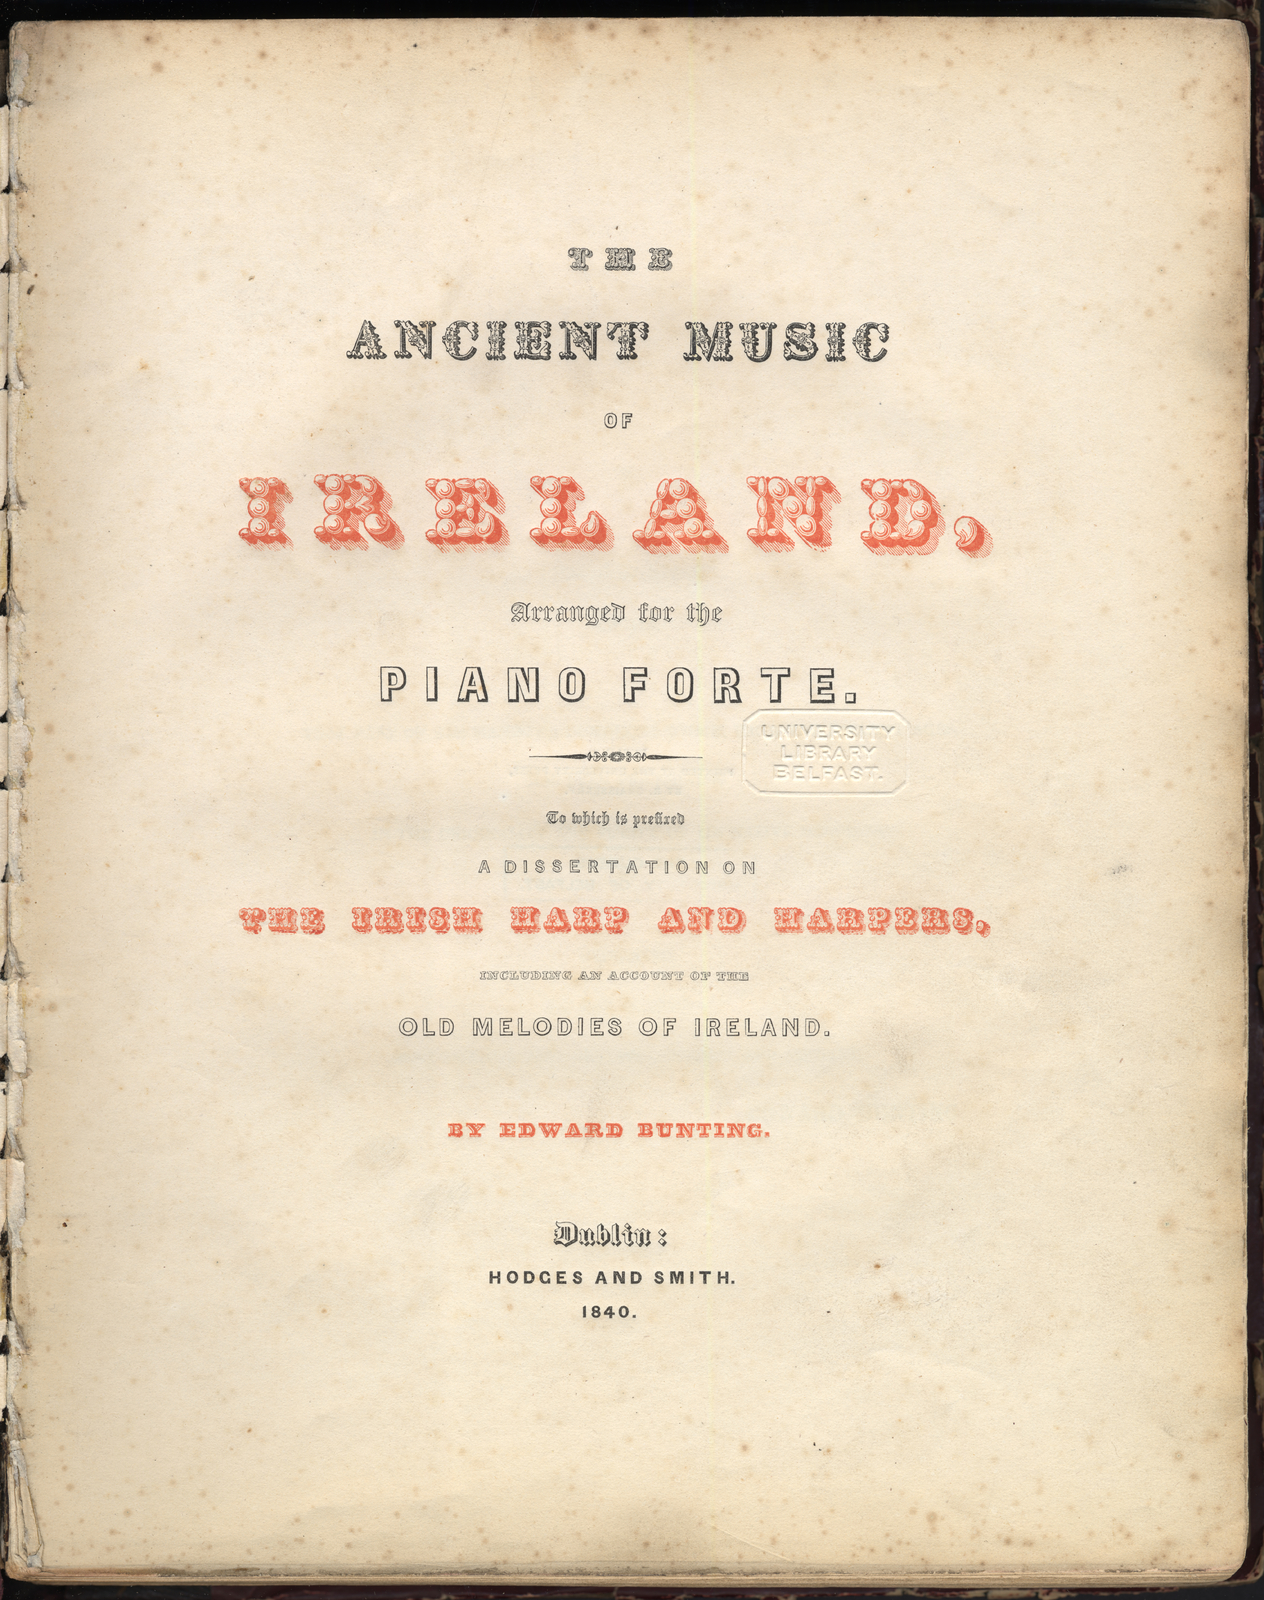 MS 4/43, The ancient music of Ireland : arranged for the piano forte ; to which is prefixed a dissertation on the Irish harp and harpers, including an account of the old melodies of Ireland